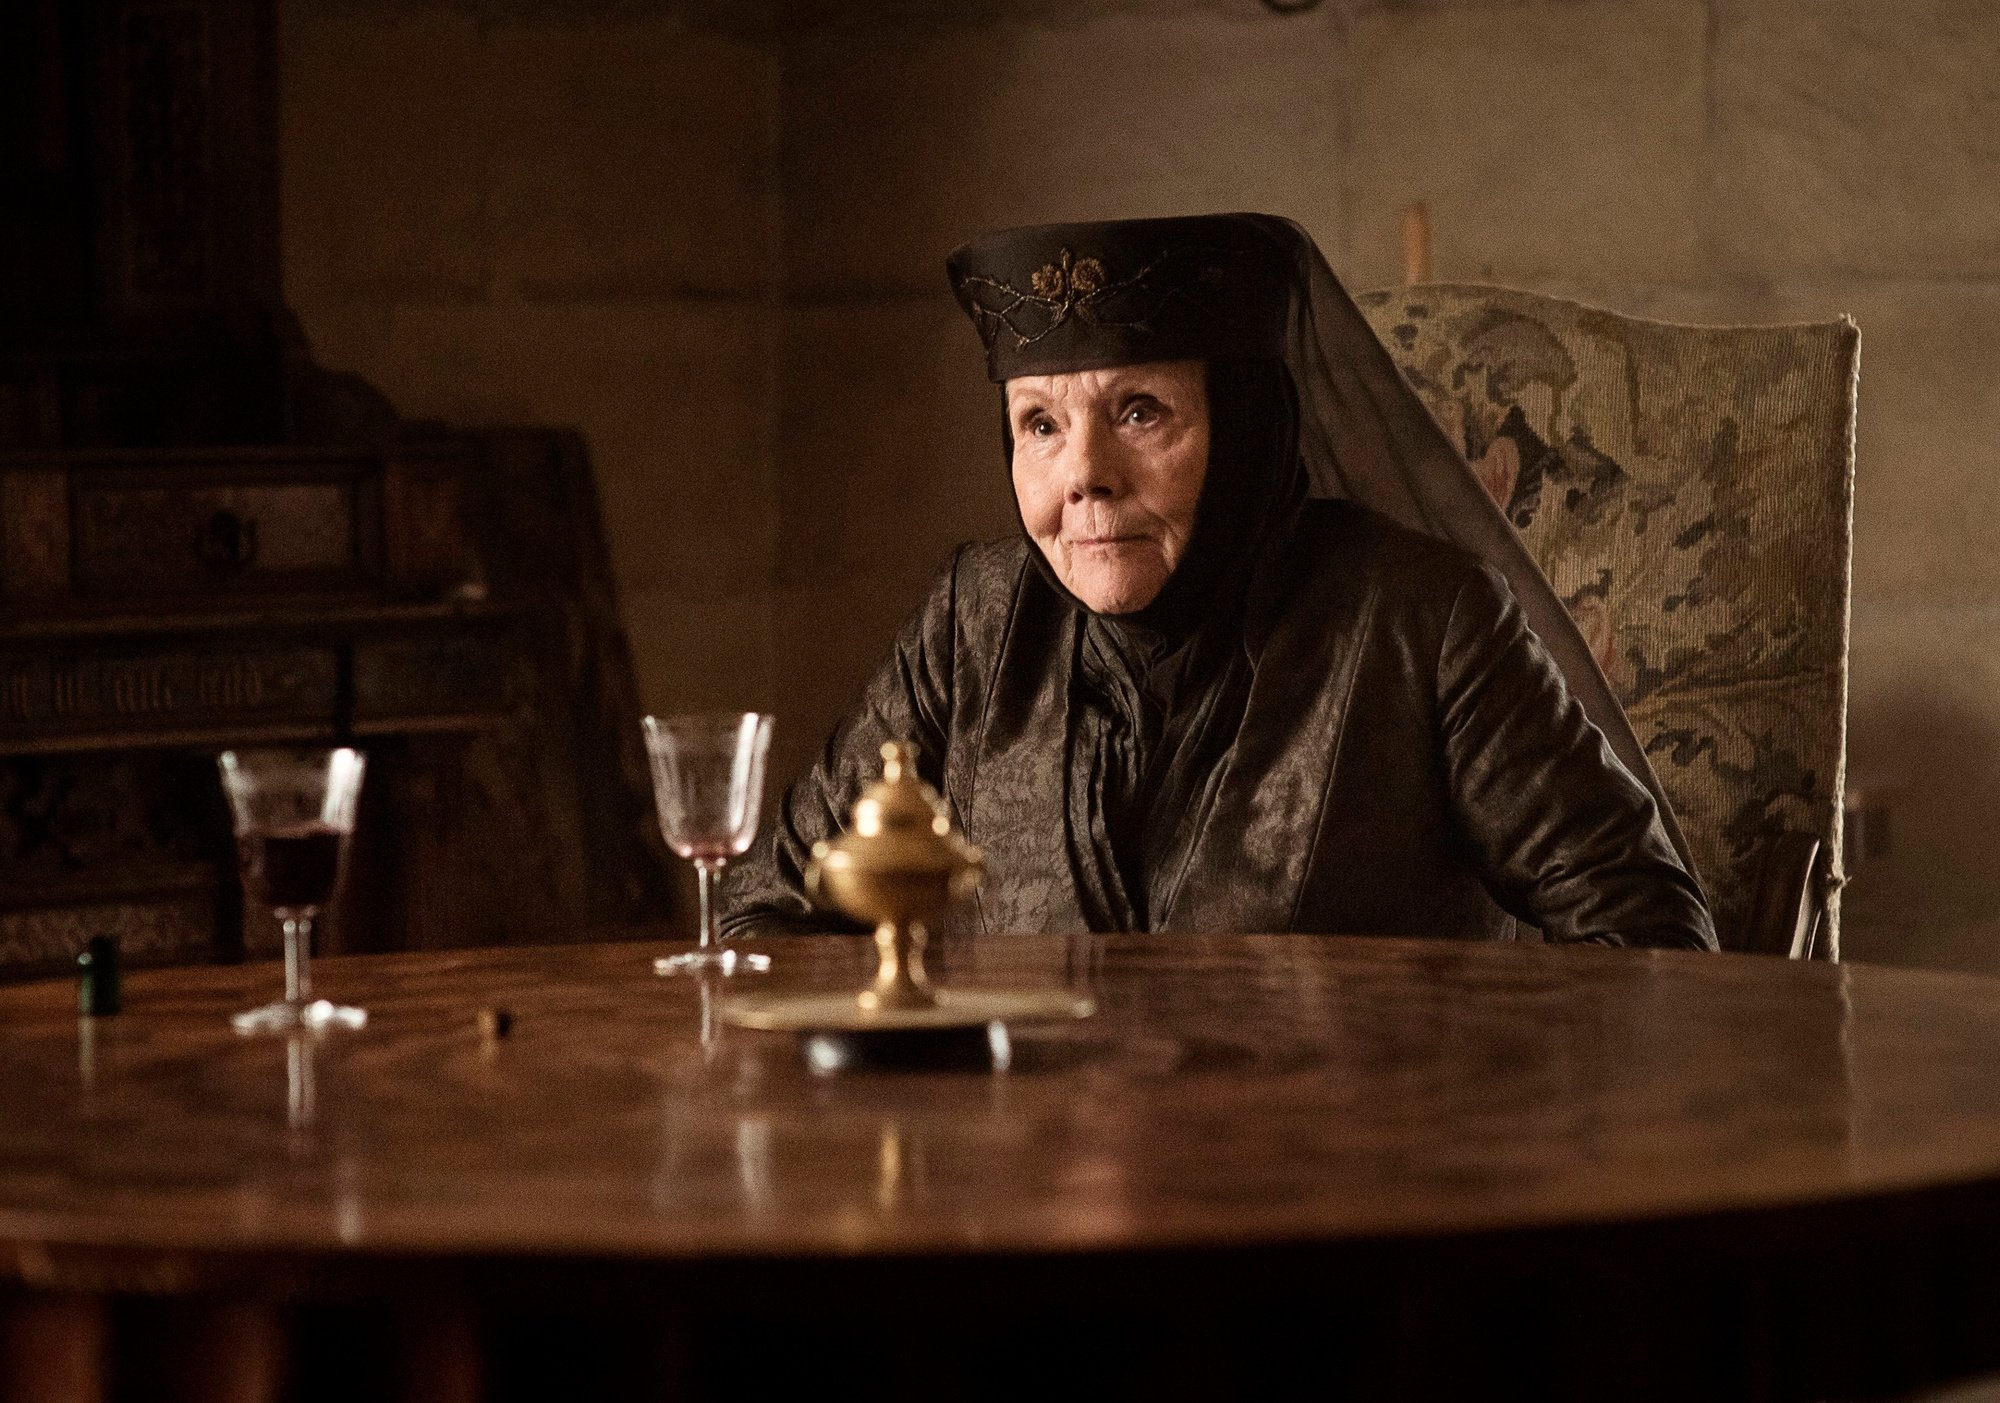 Diana Rigg, Olenna Tyrell dans Game of Thrones, ISOPIX